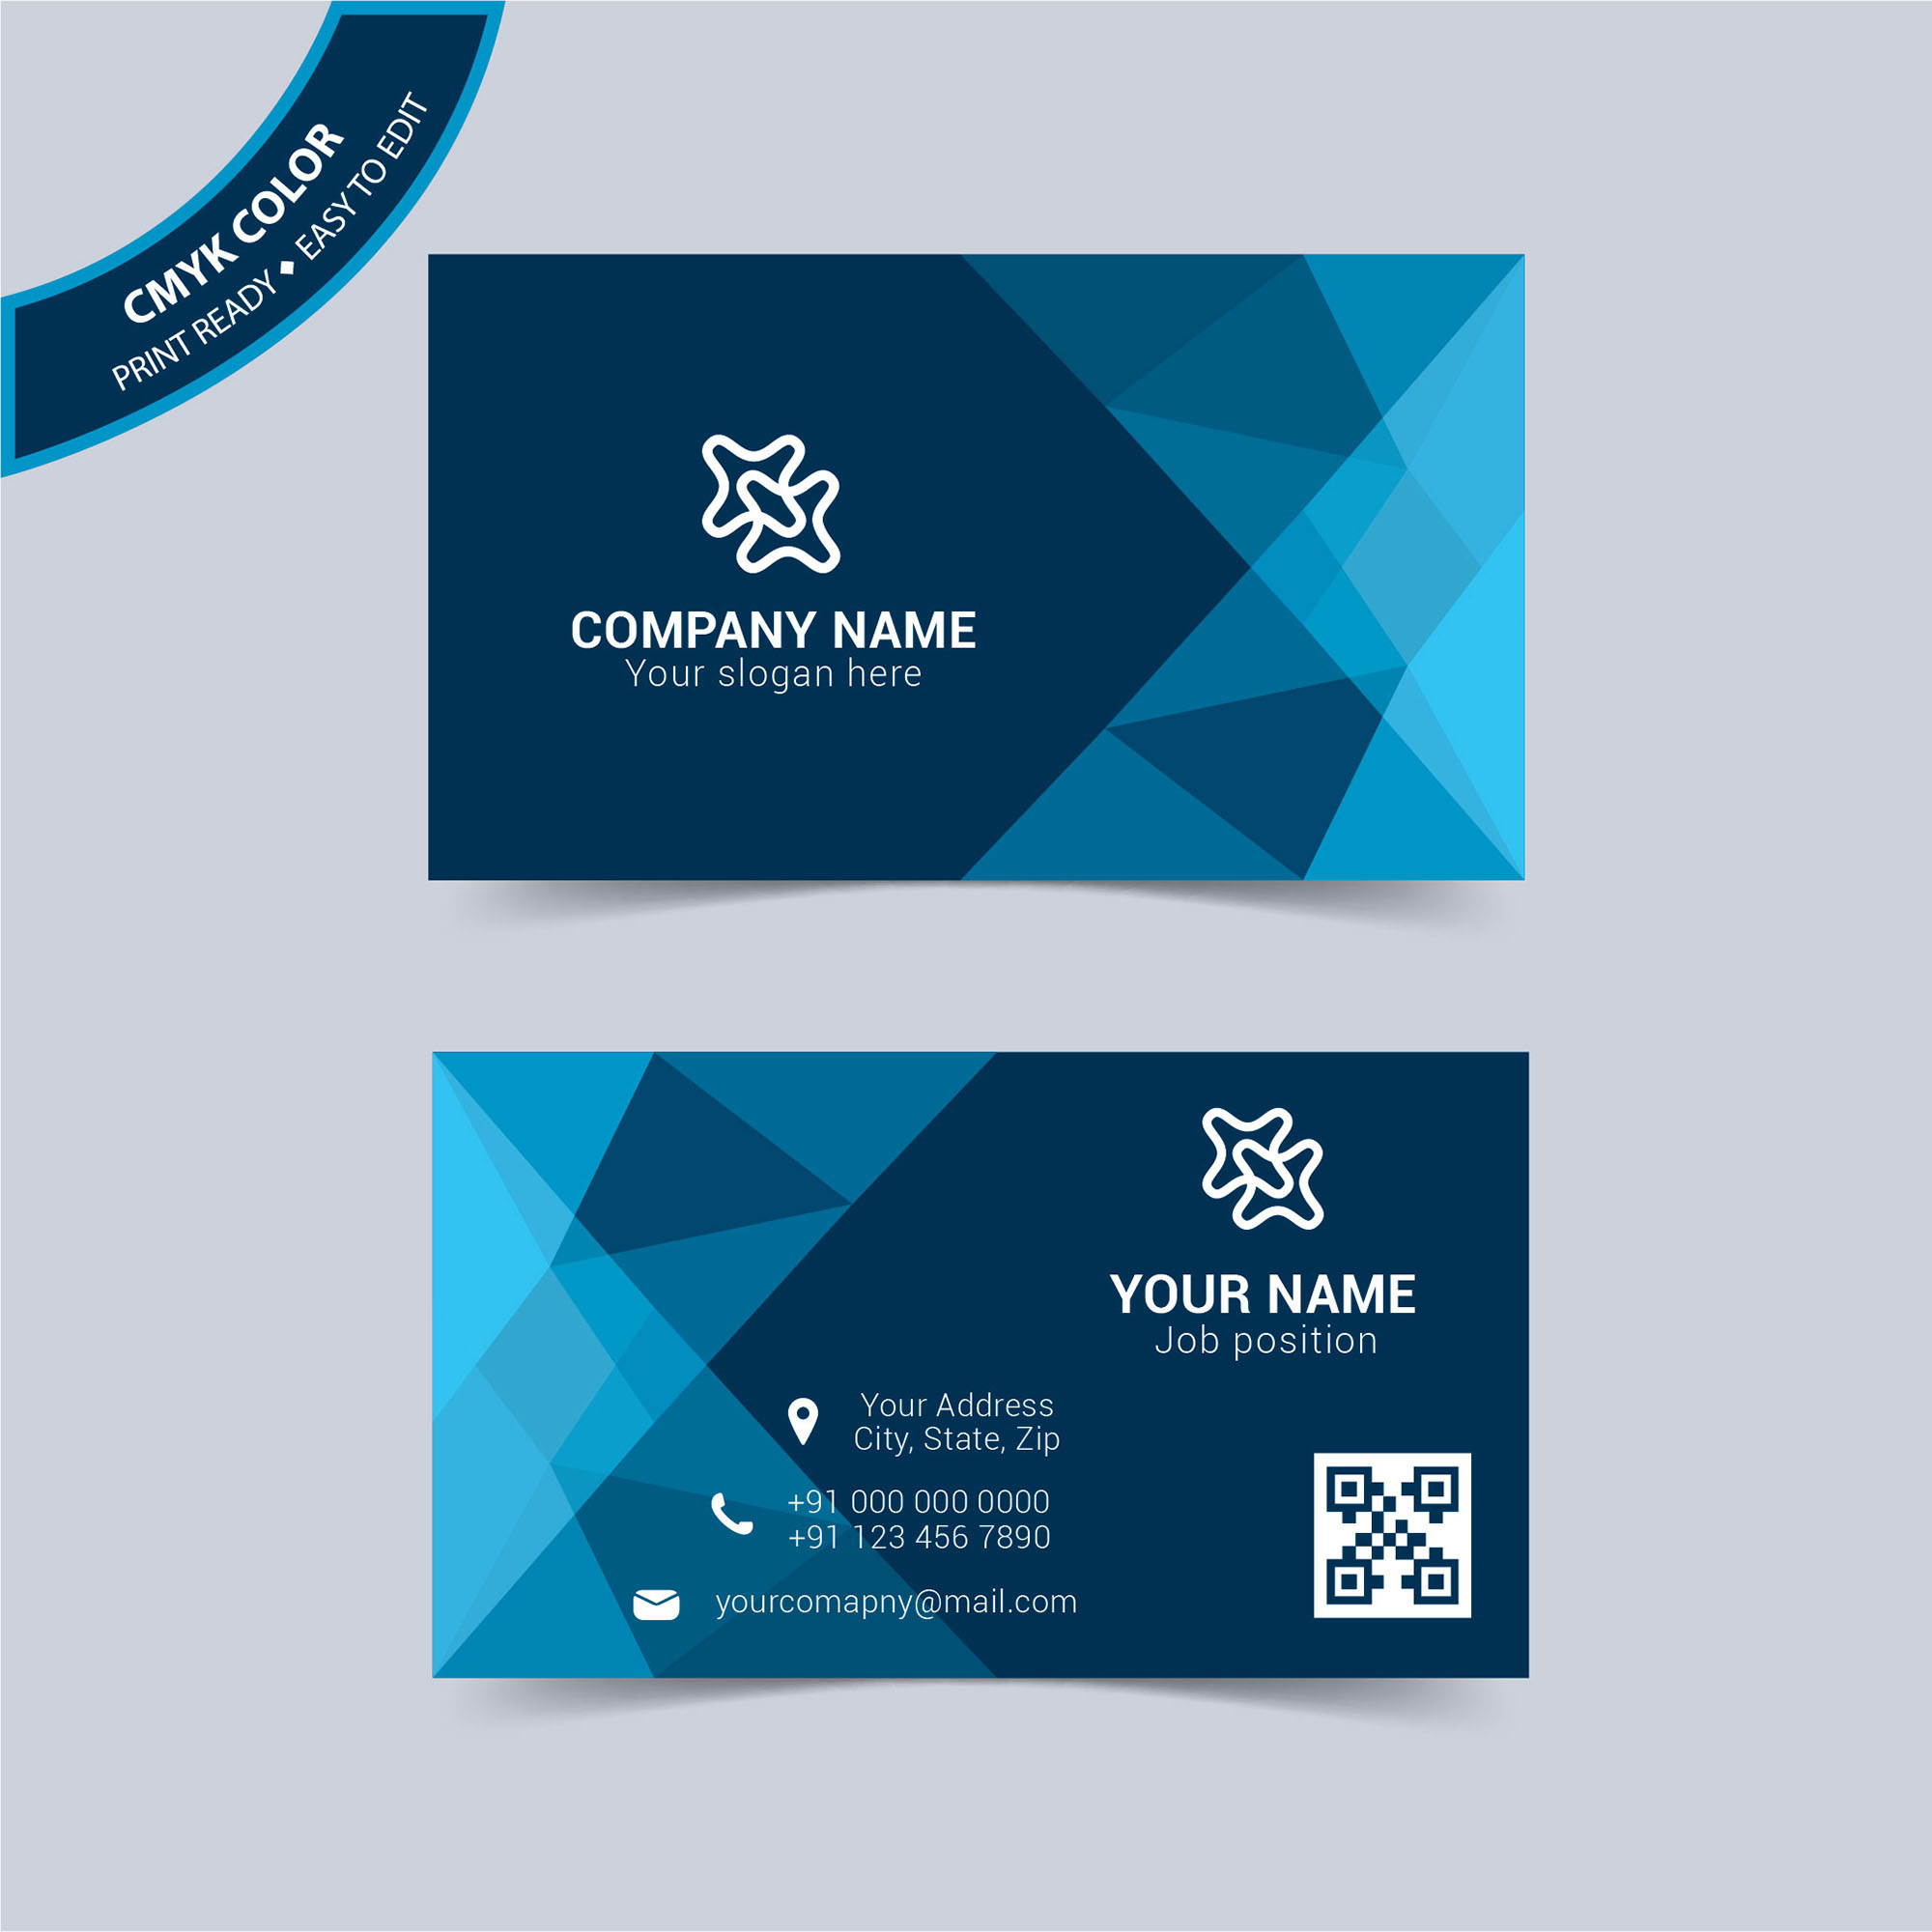 Creative corporate business card design free download wisxi business card business cards business card design business card template design templates flashek Images